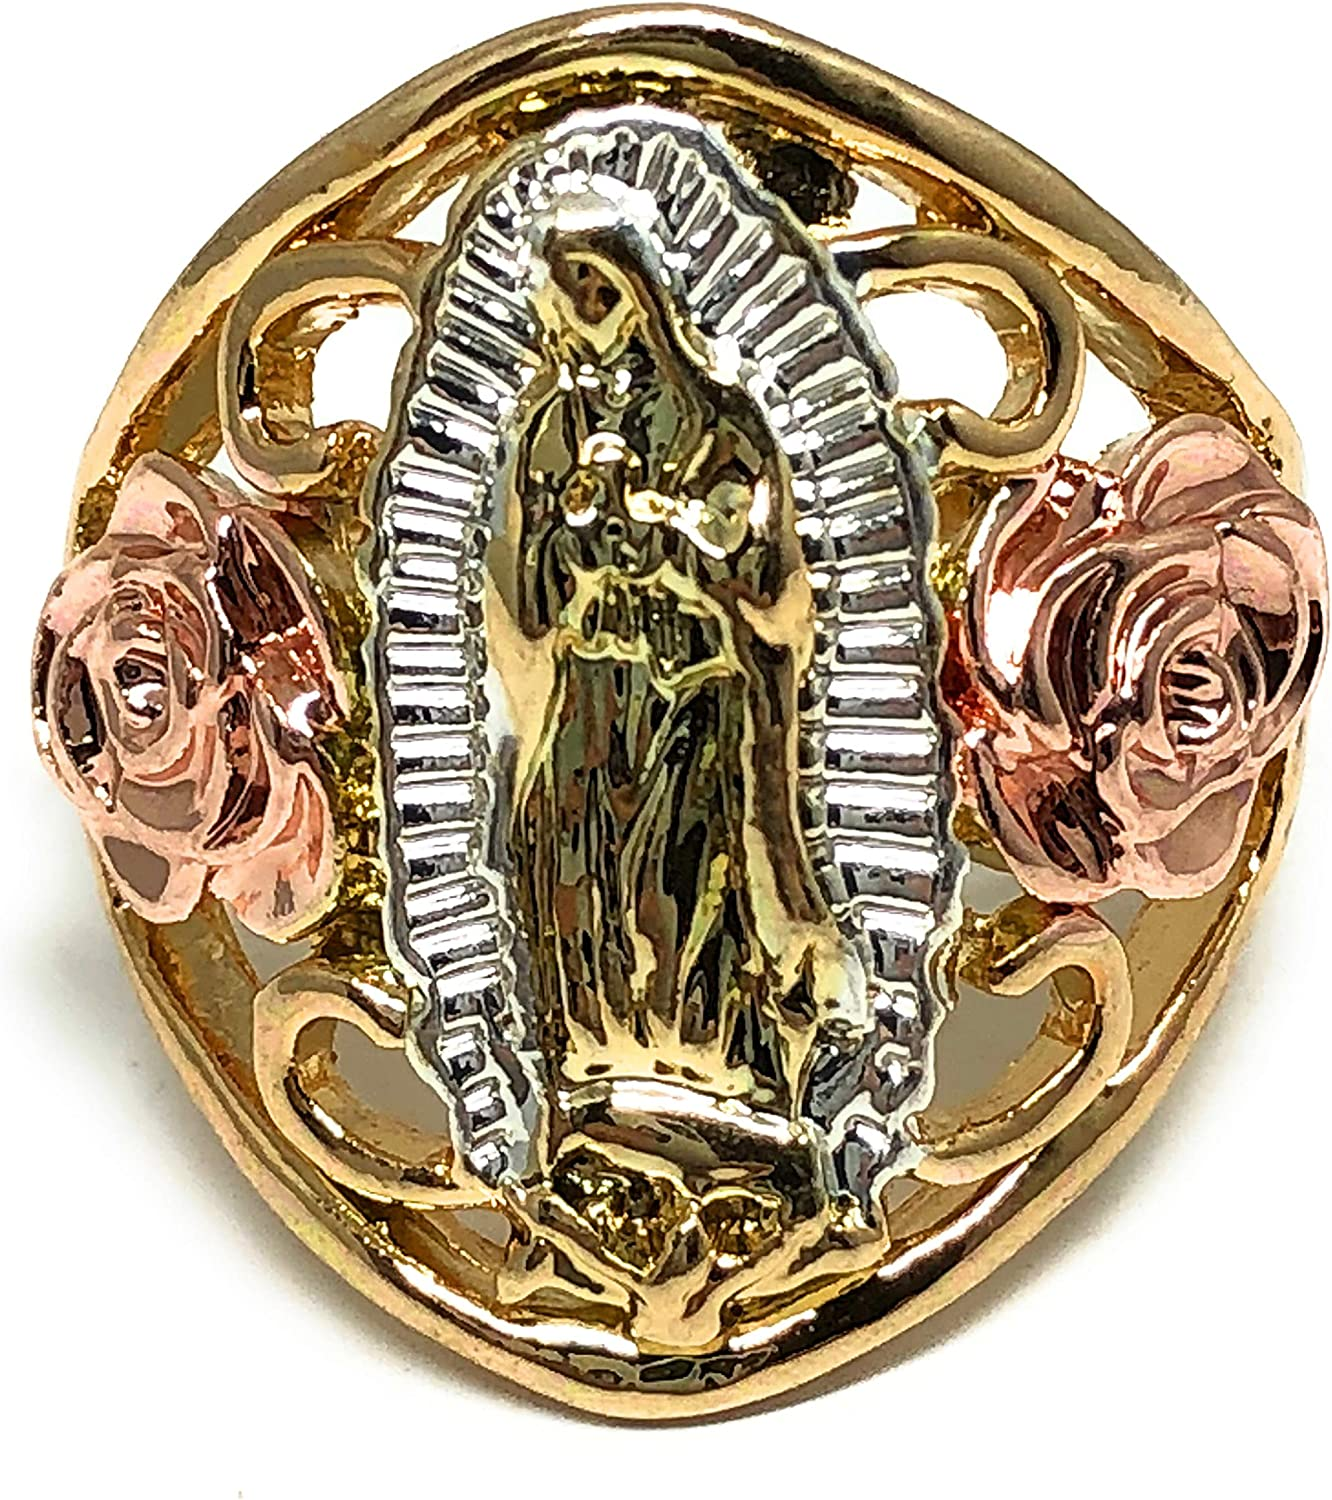 Fran & Co. Gold Plated Women's Tri-Color Virgin Mary Flower Ring Virgen de Guadalupe Anillo Flores